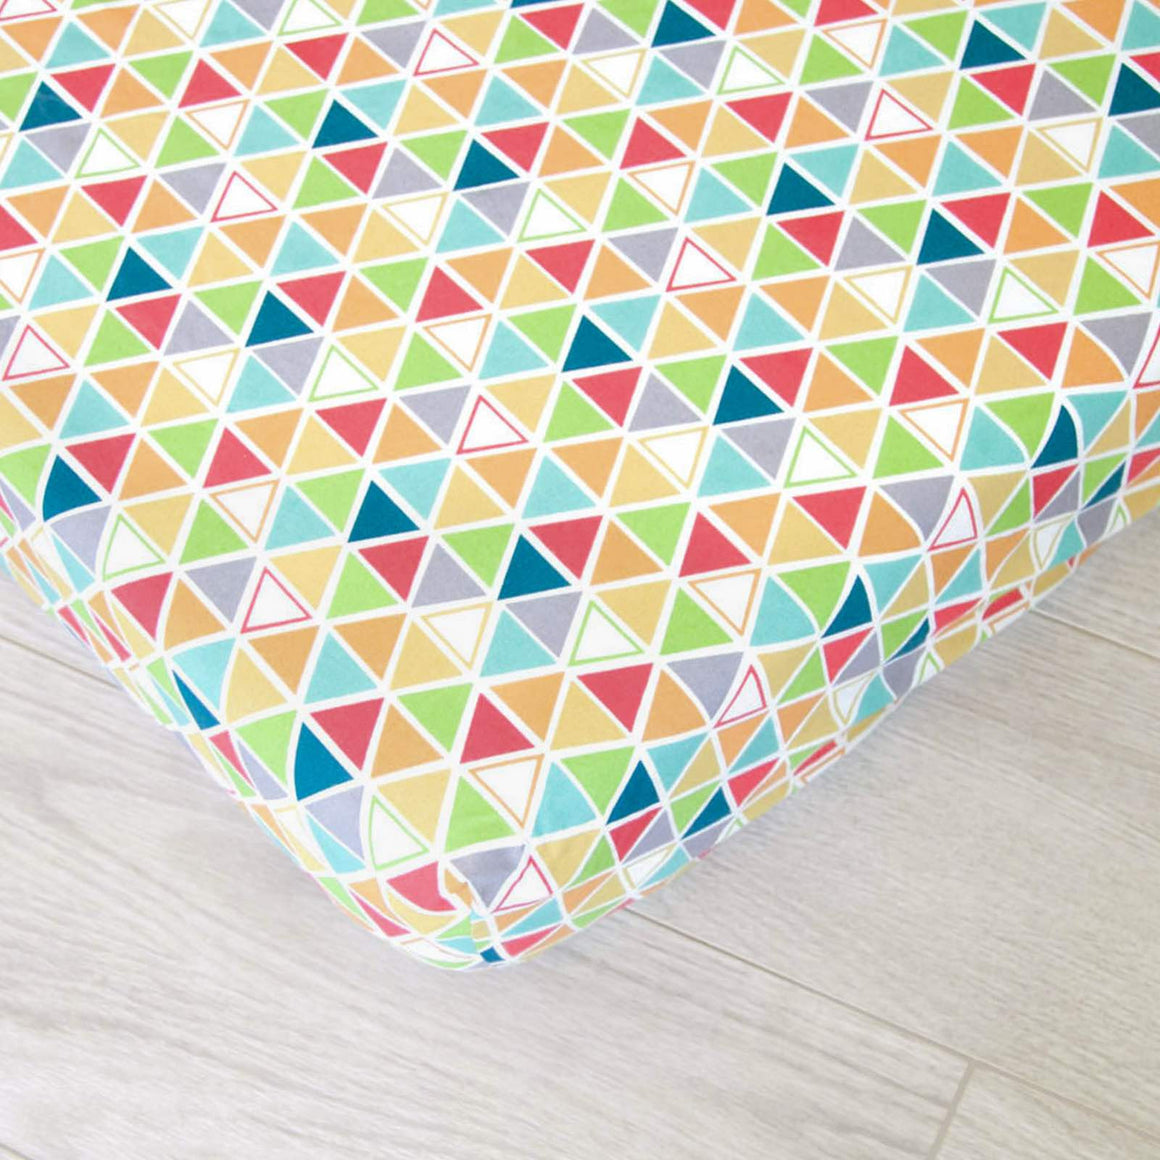 Organic Fitted Crib Sheet, Organic Baby Bedding, GOTS Certified, Colorful Triangles